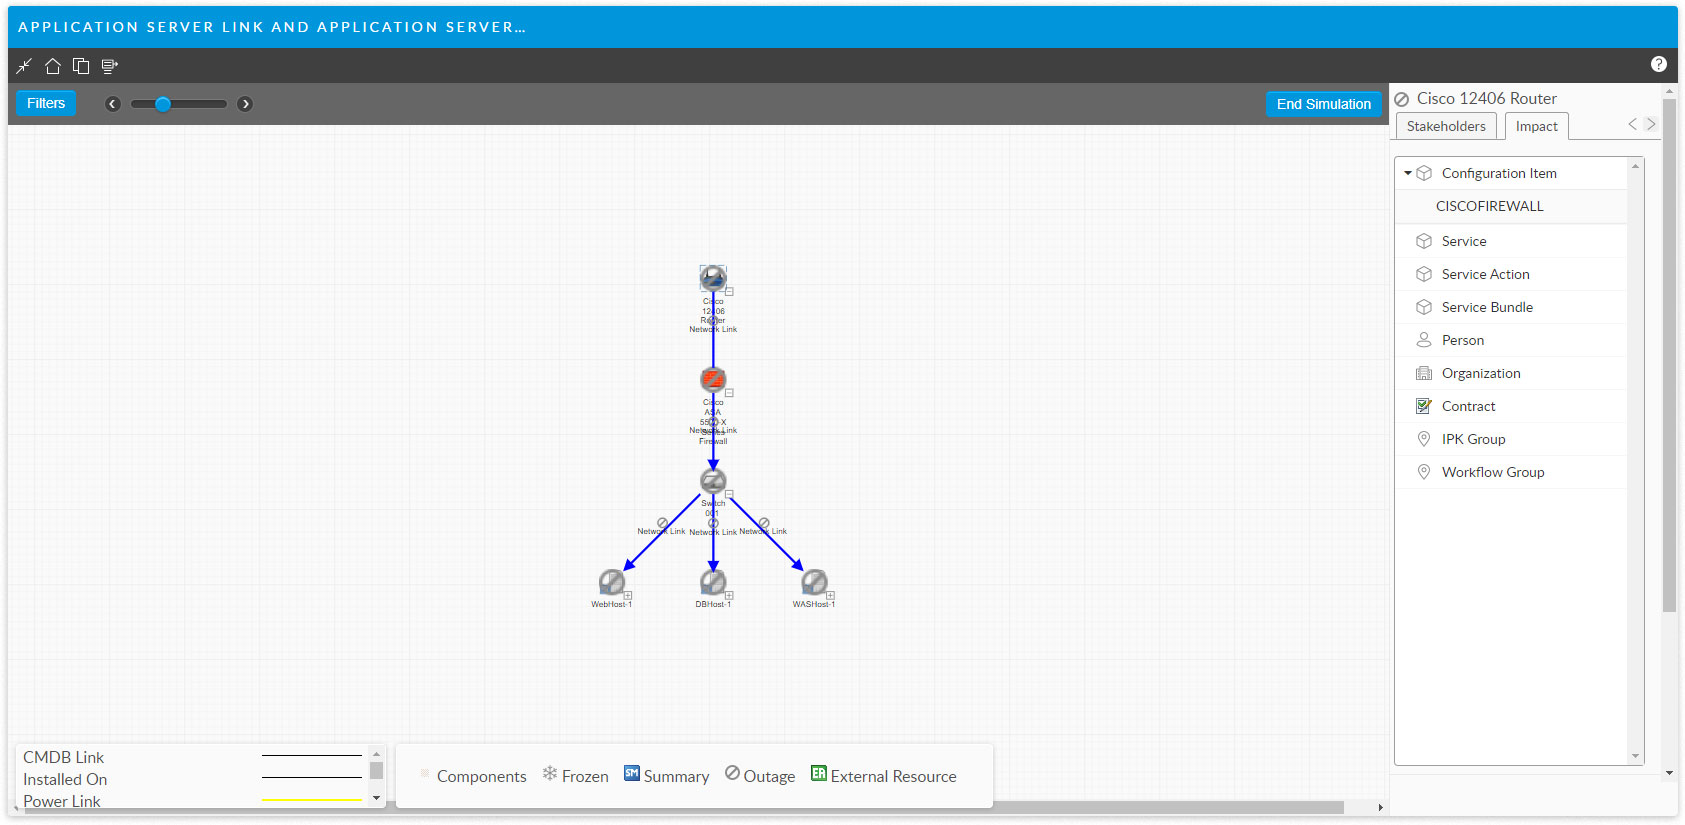 Availability Management - Outage Simulation